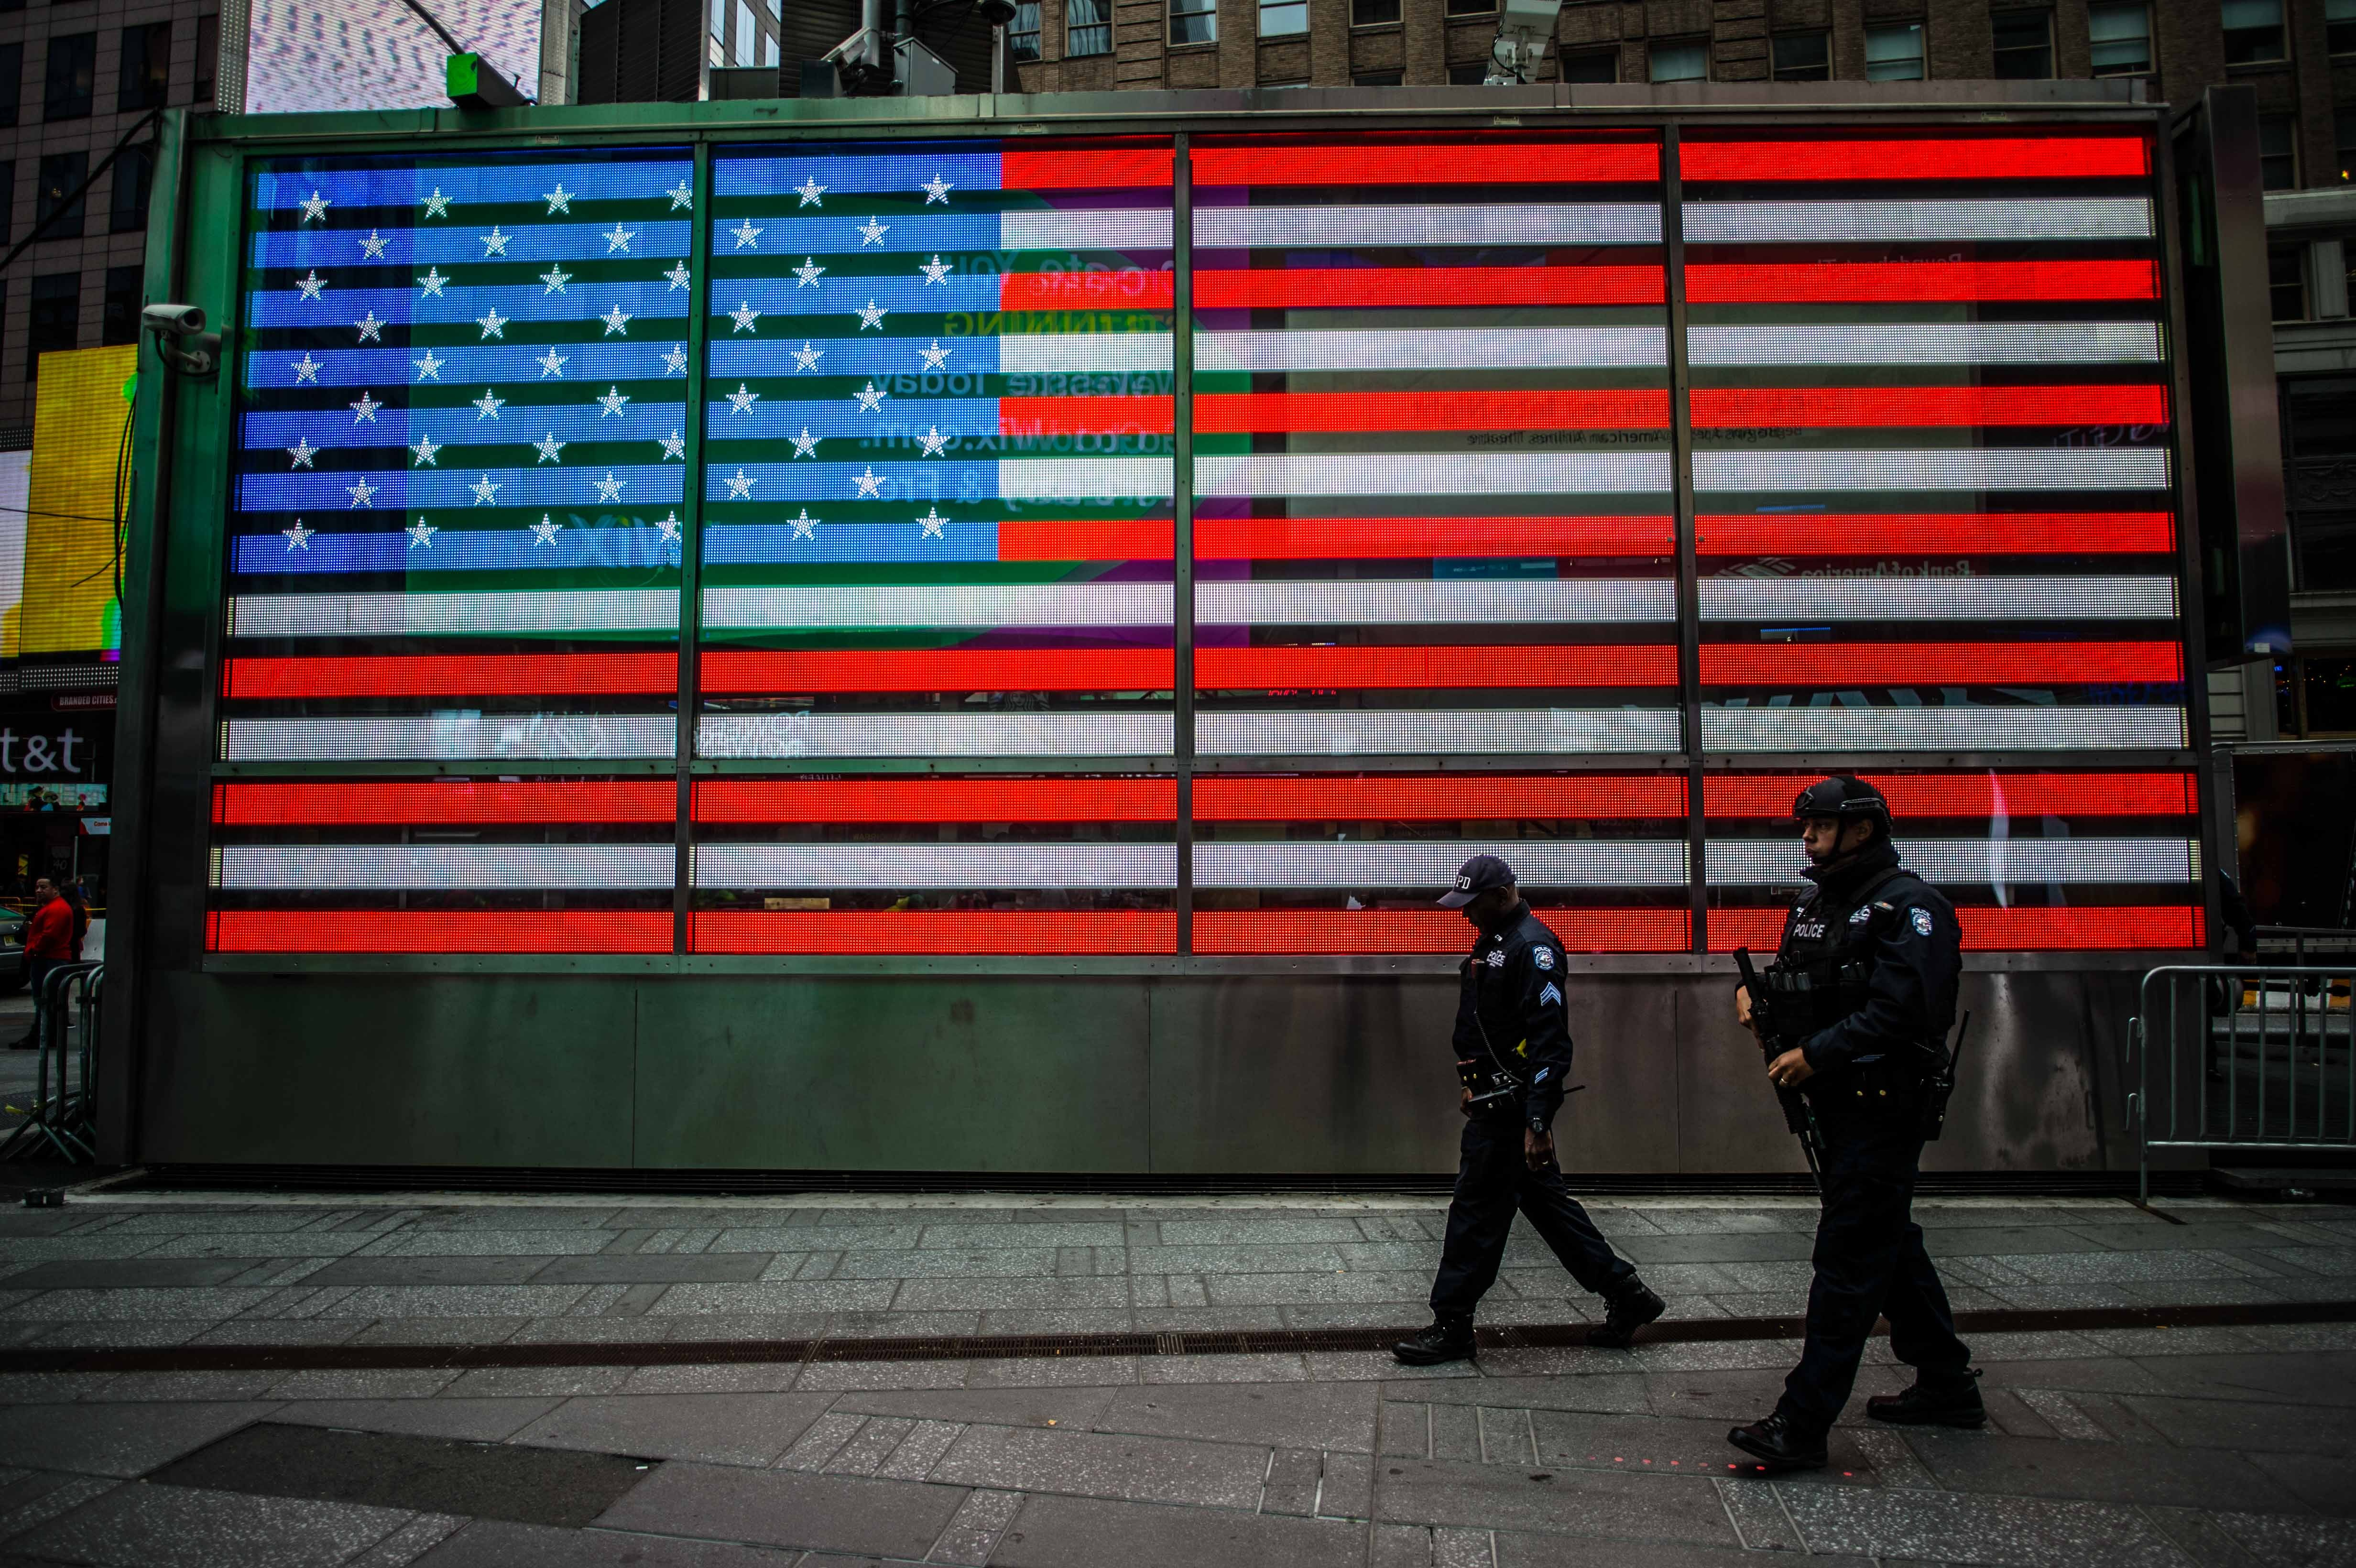 Police officers walking past an American flag.